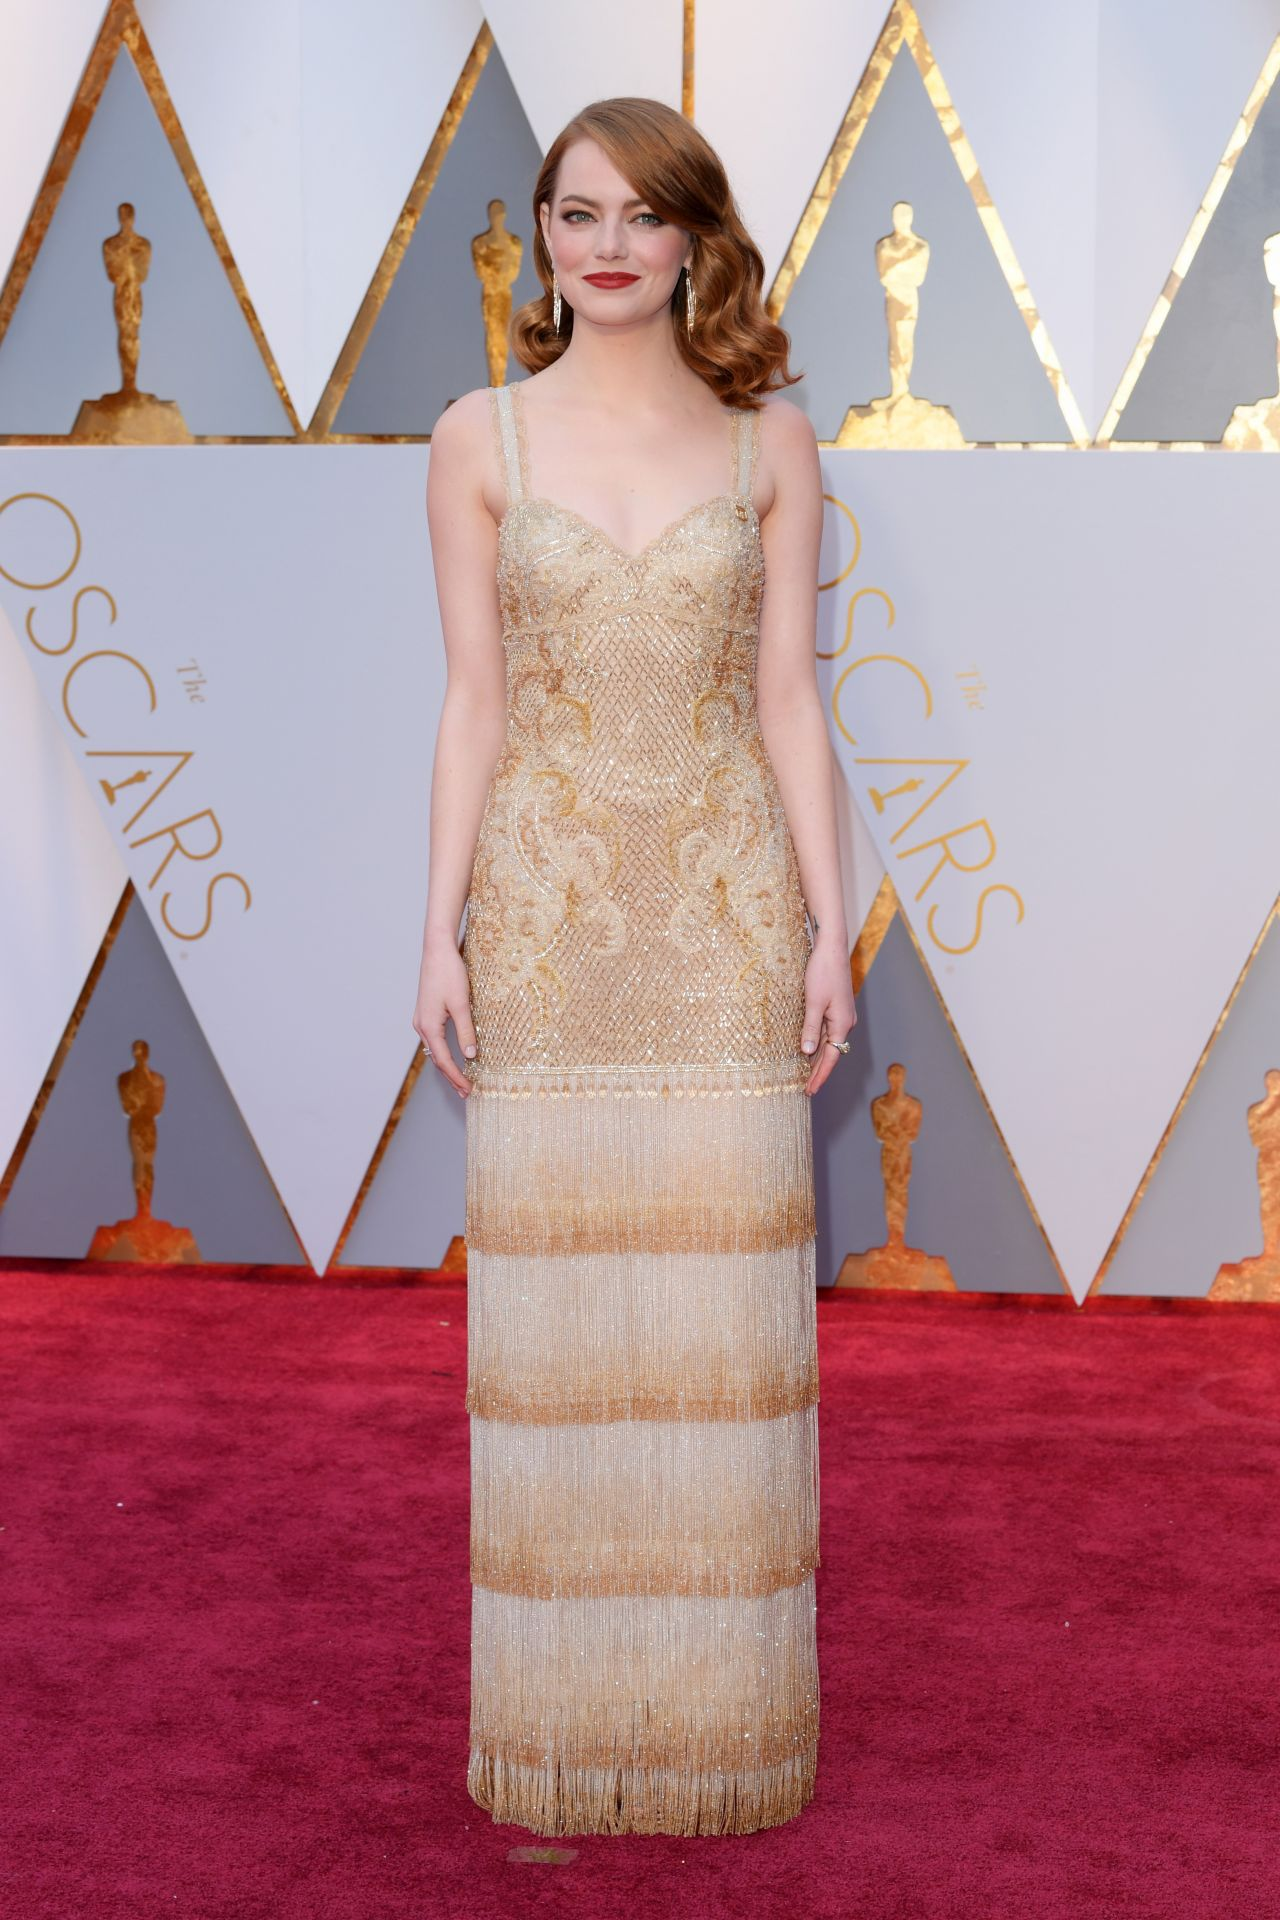 Image result for Emma Stone Oscar 2017 Red Carpet